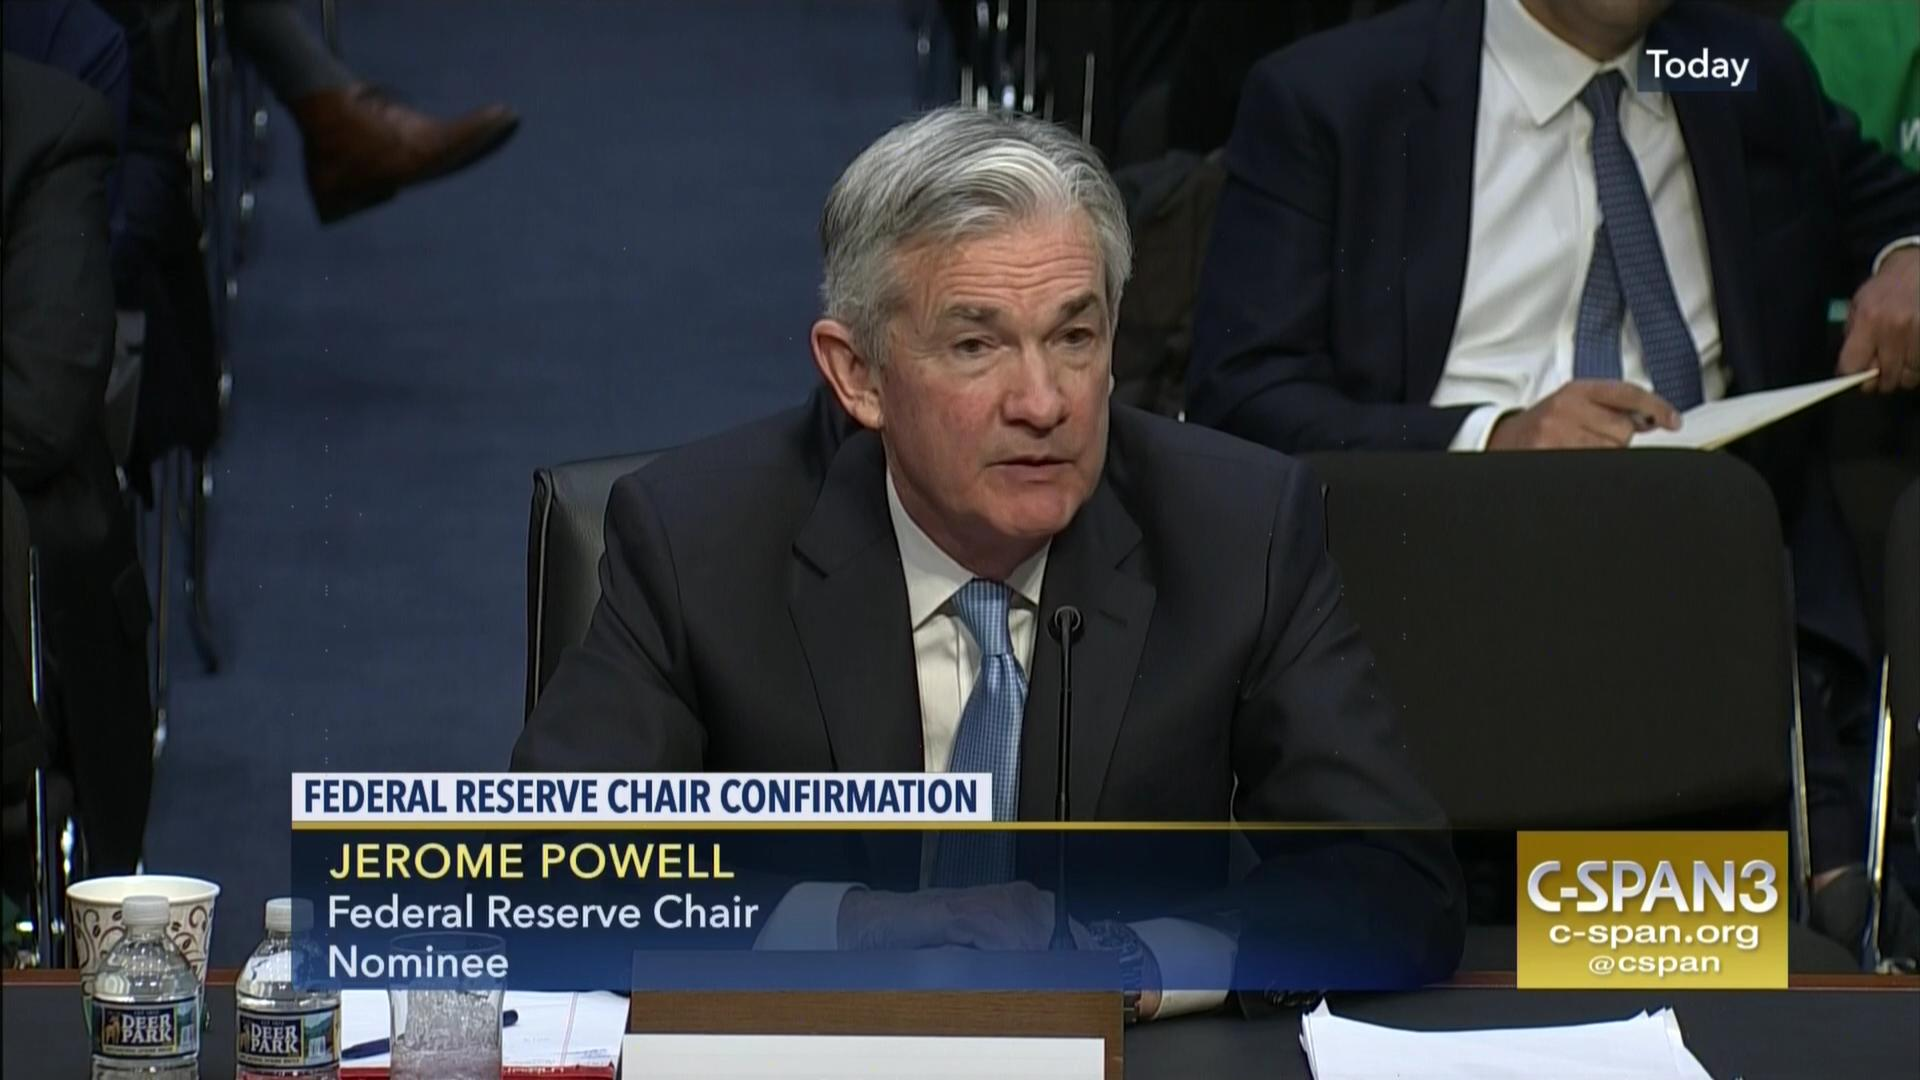 Feds Find Fewer States Meeting Special >> Federal Reserve Chair Confirmation Hearing C Span Org